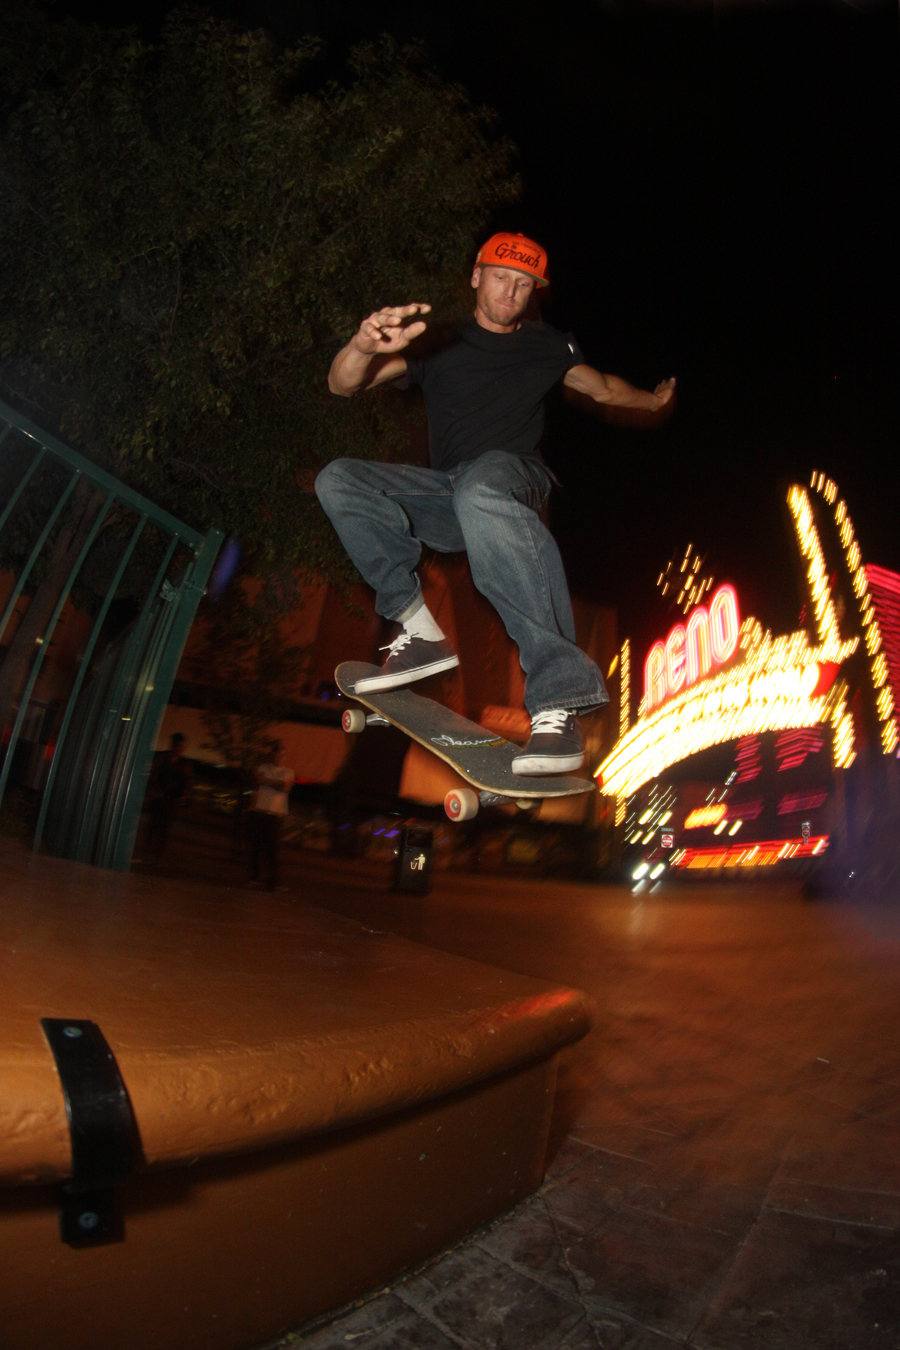 Colin Grover frontside half cab downtown Reno photo Volland